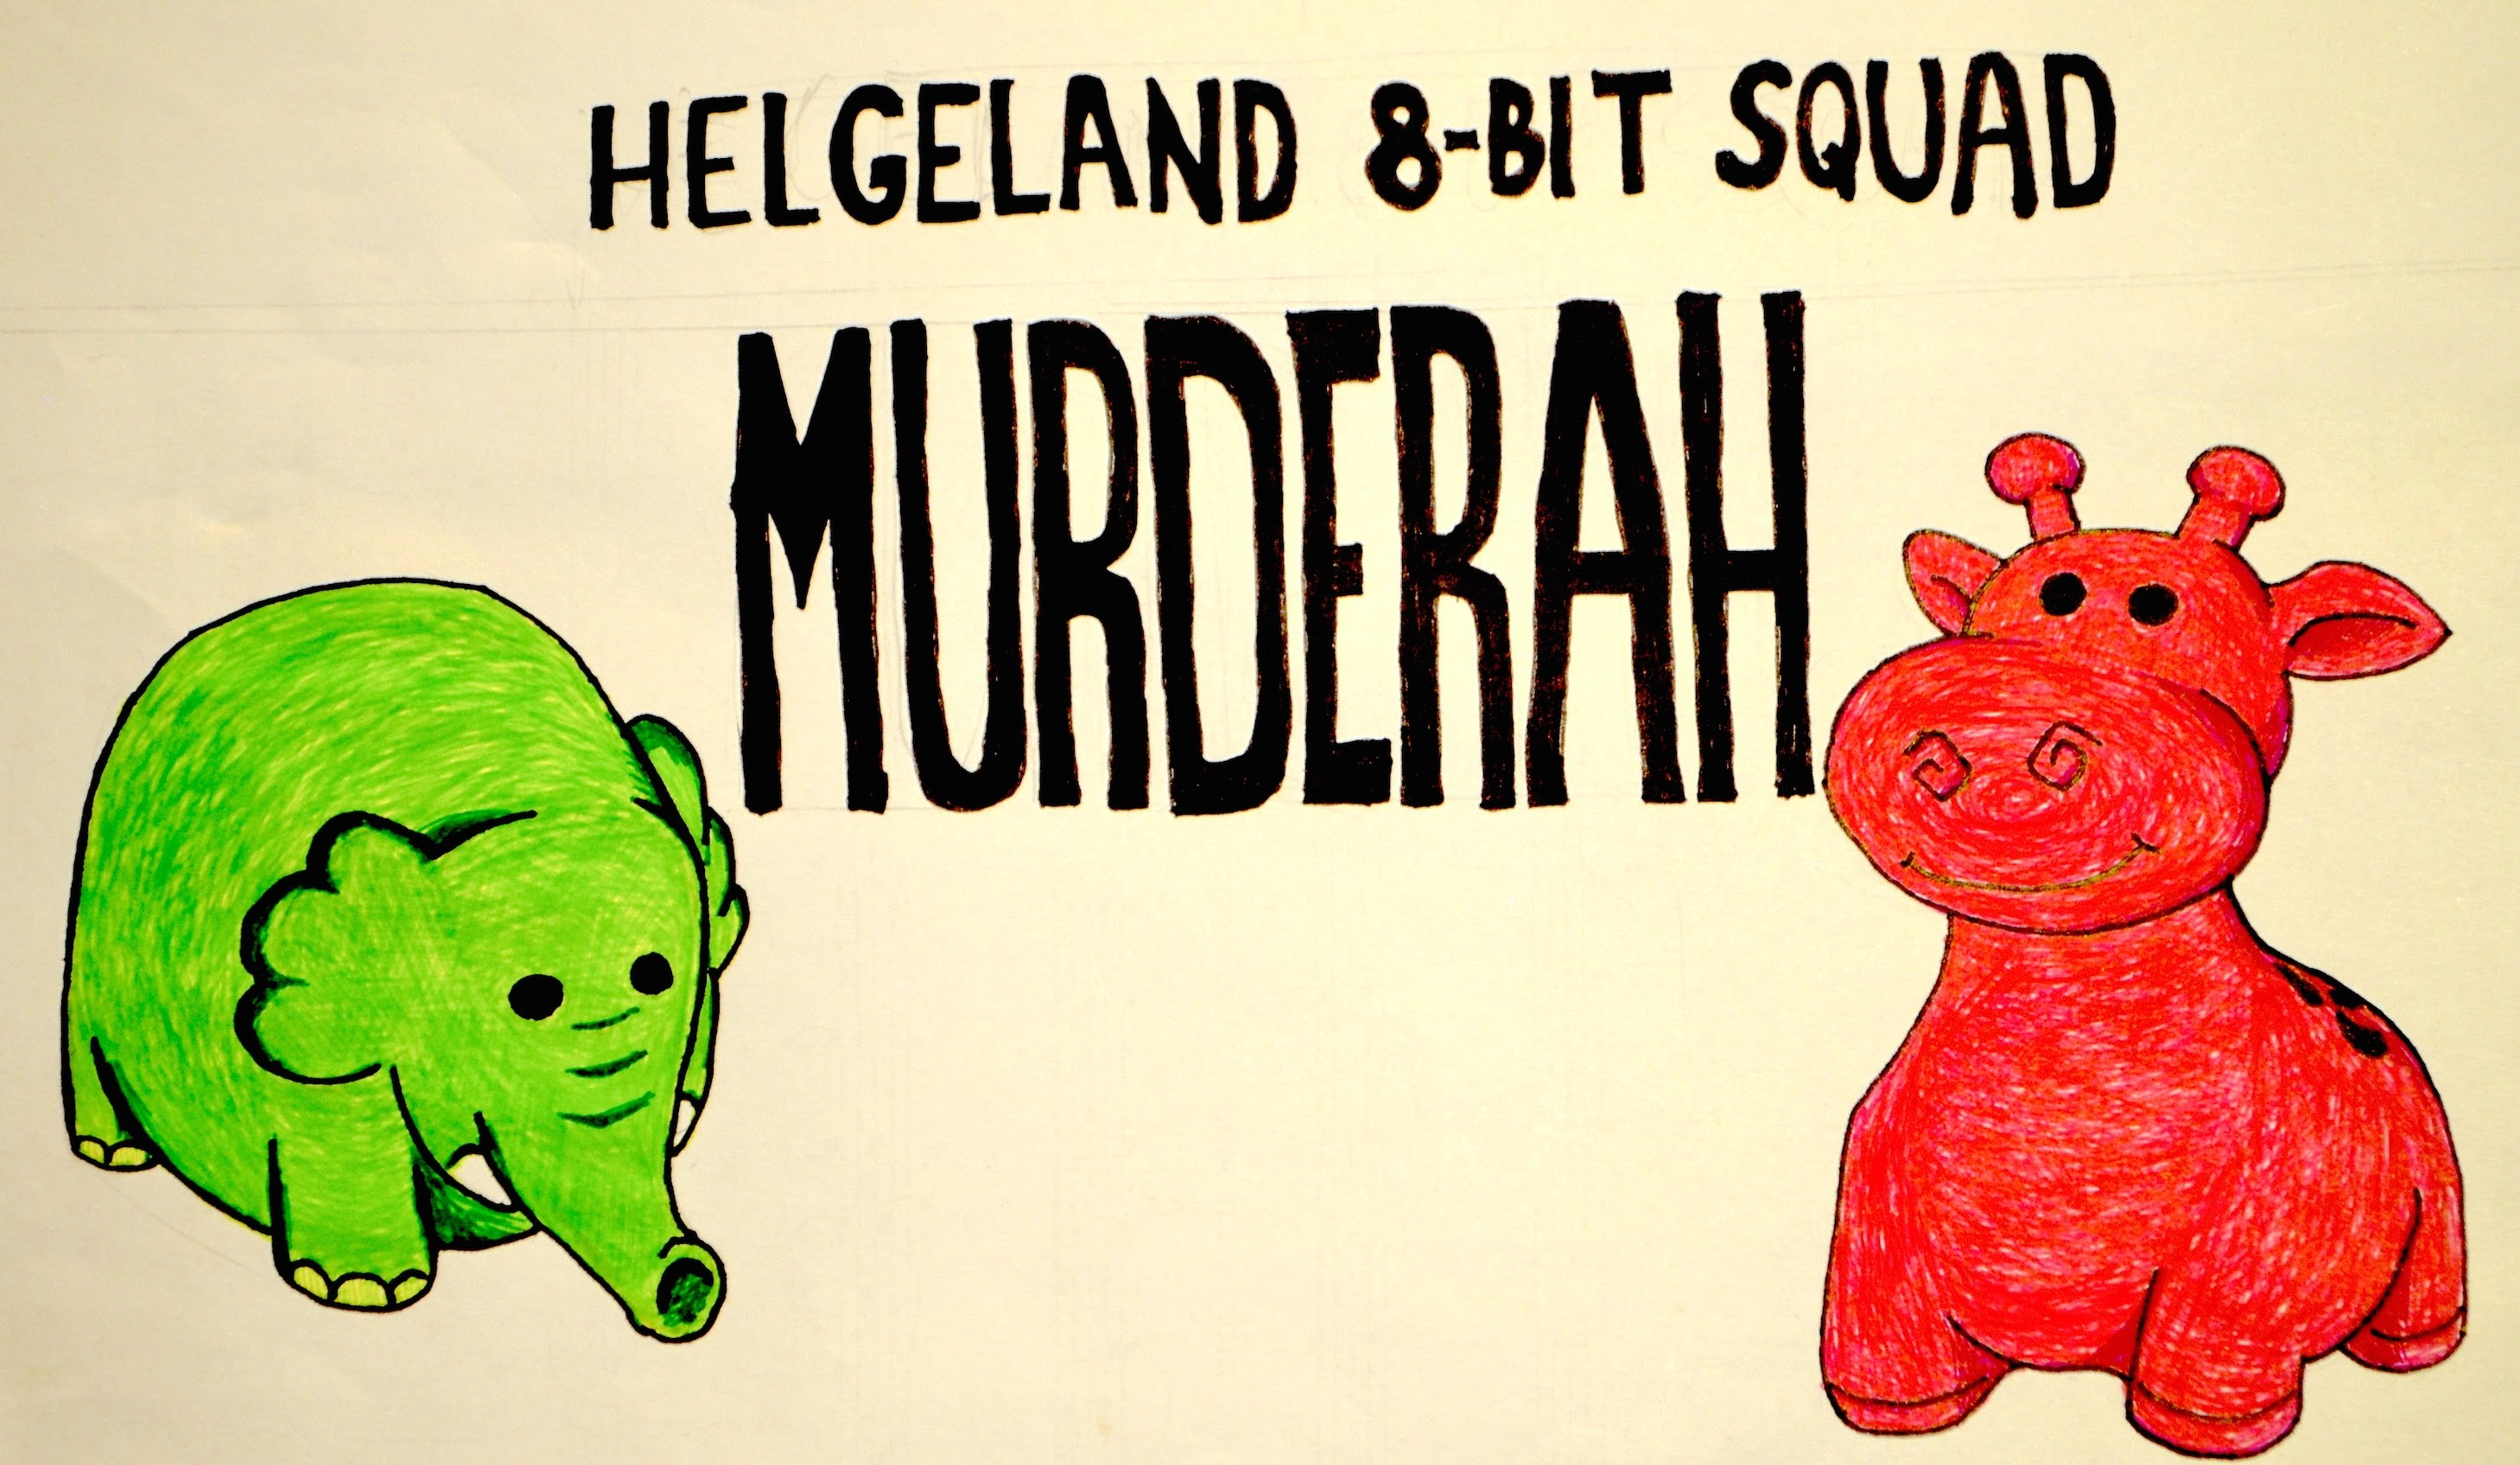 Asteroid clipart 8 bit. Helgeland squad murderah official